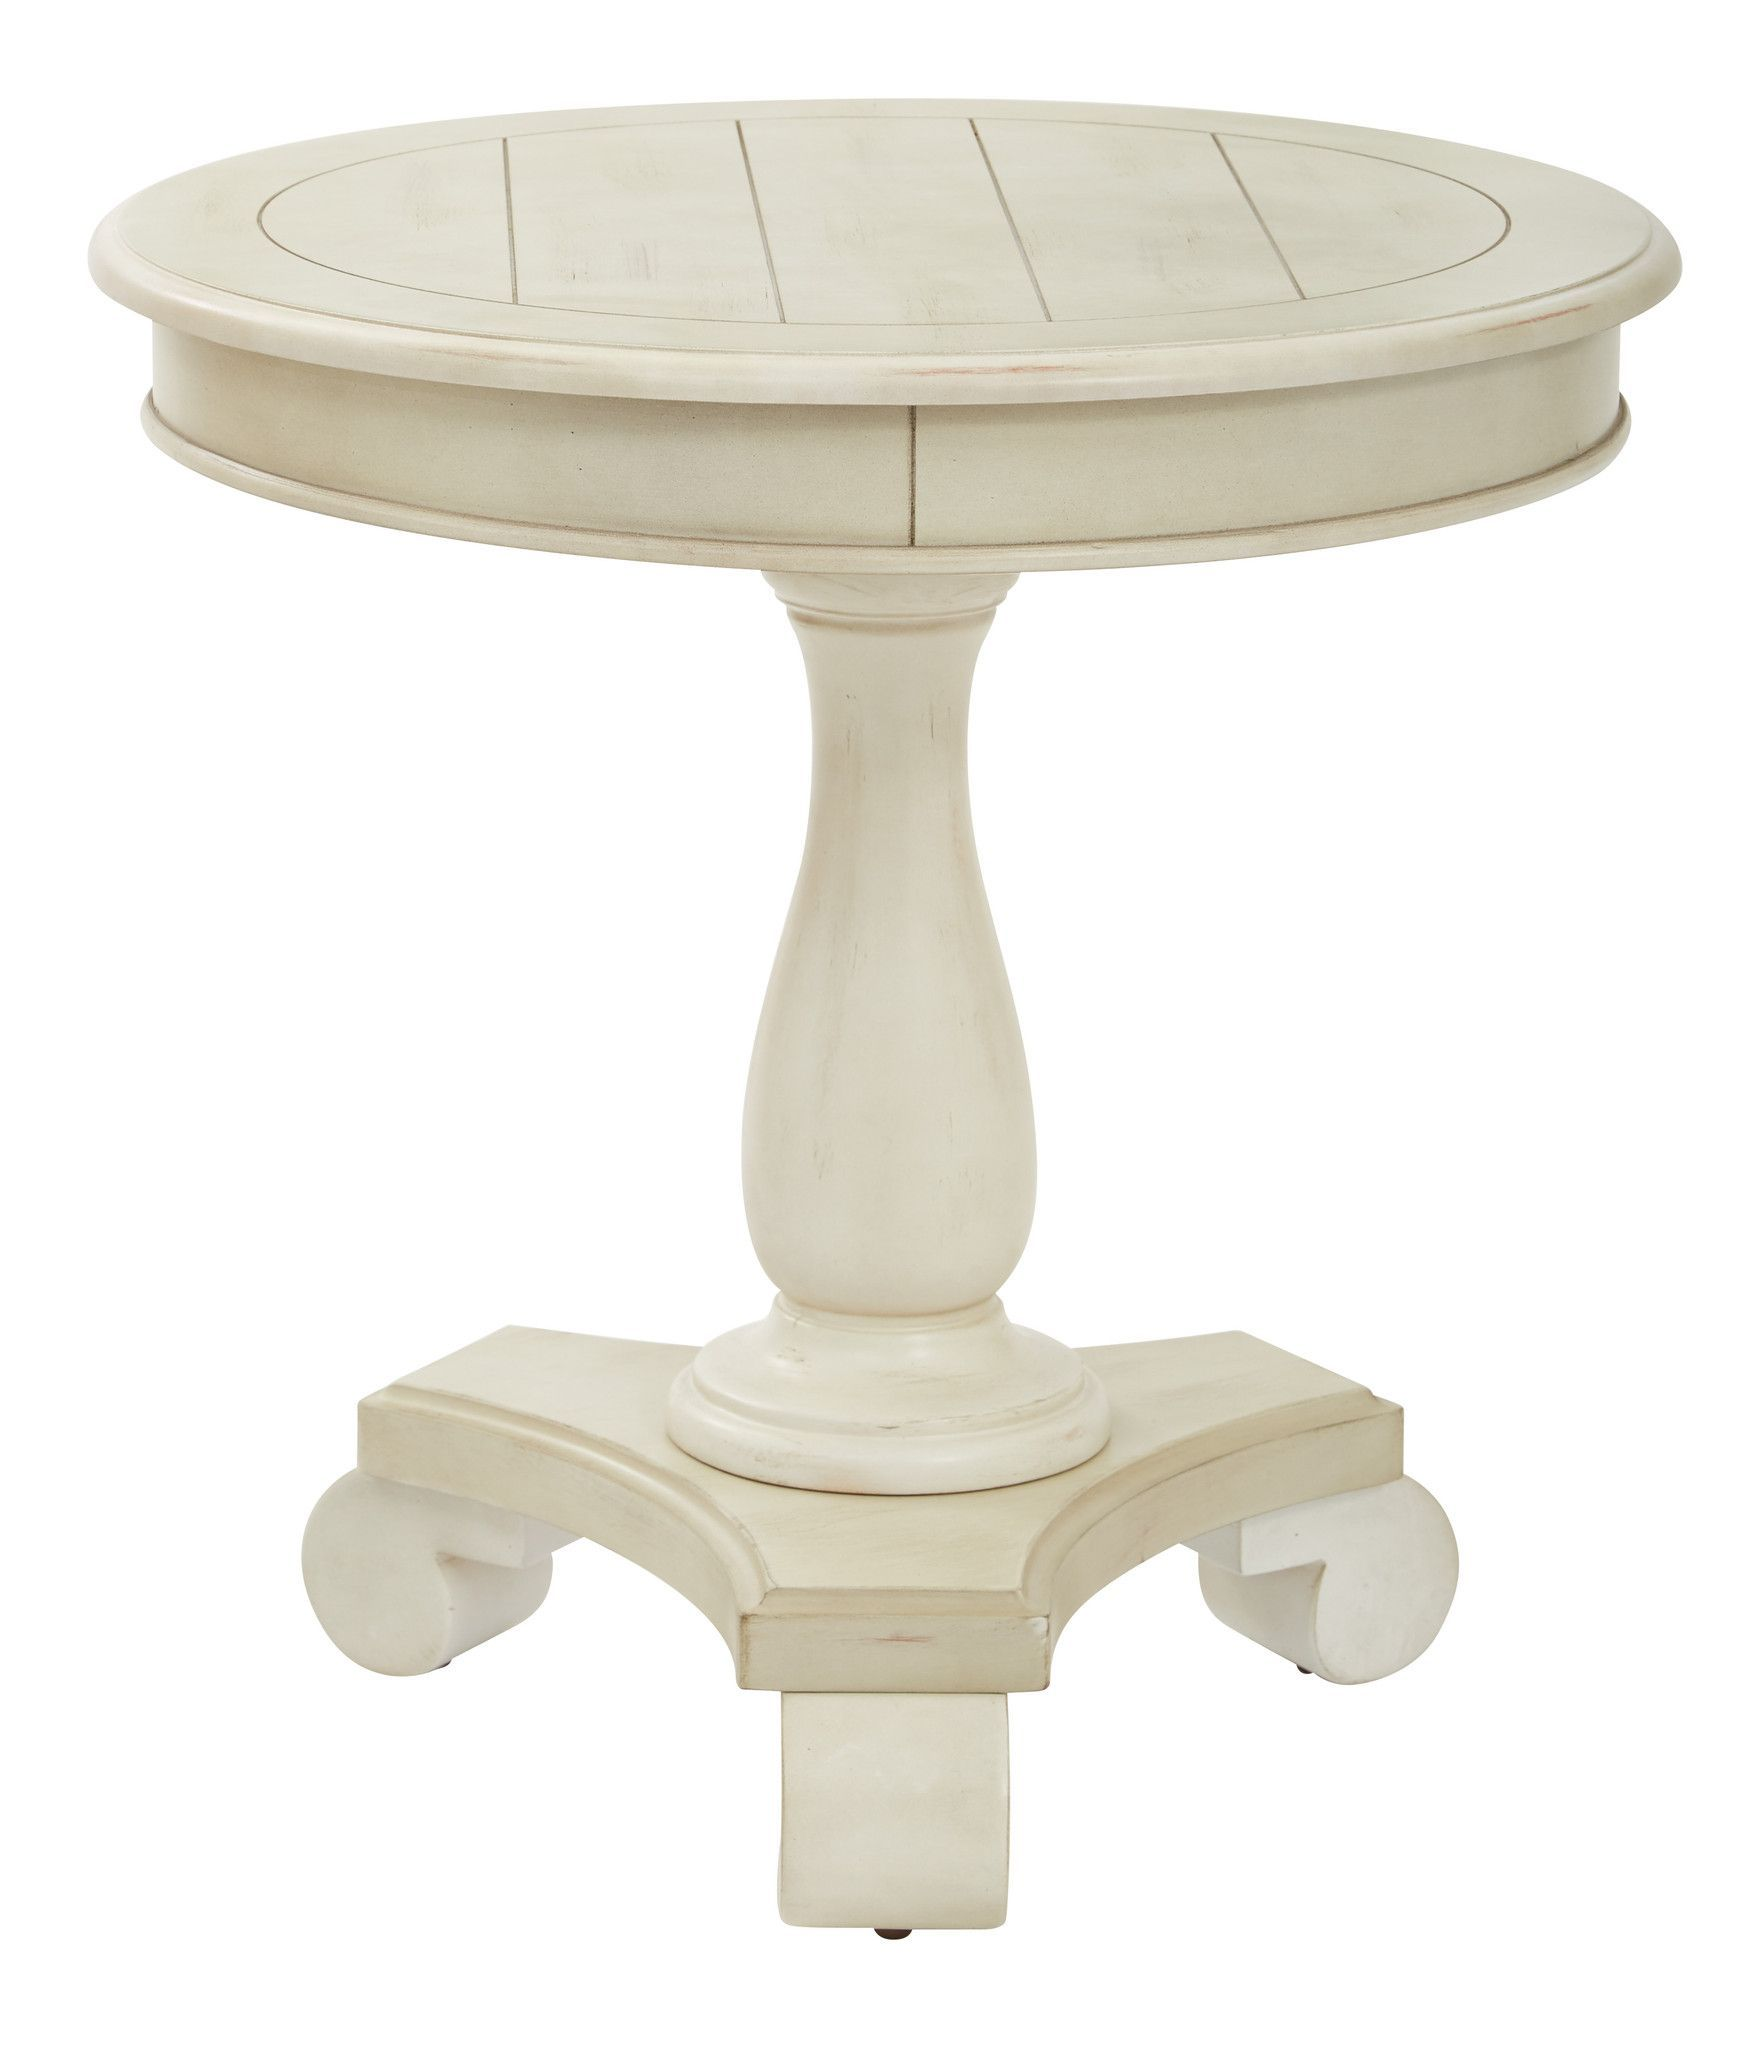 inspired bassett avalon round accent table antique beige oak finish furniture pulls ikea slipcover couch glass coffee with gold legs kitchen lighting square side storage pottery